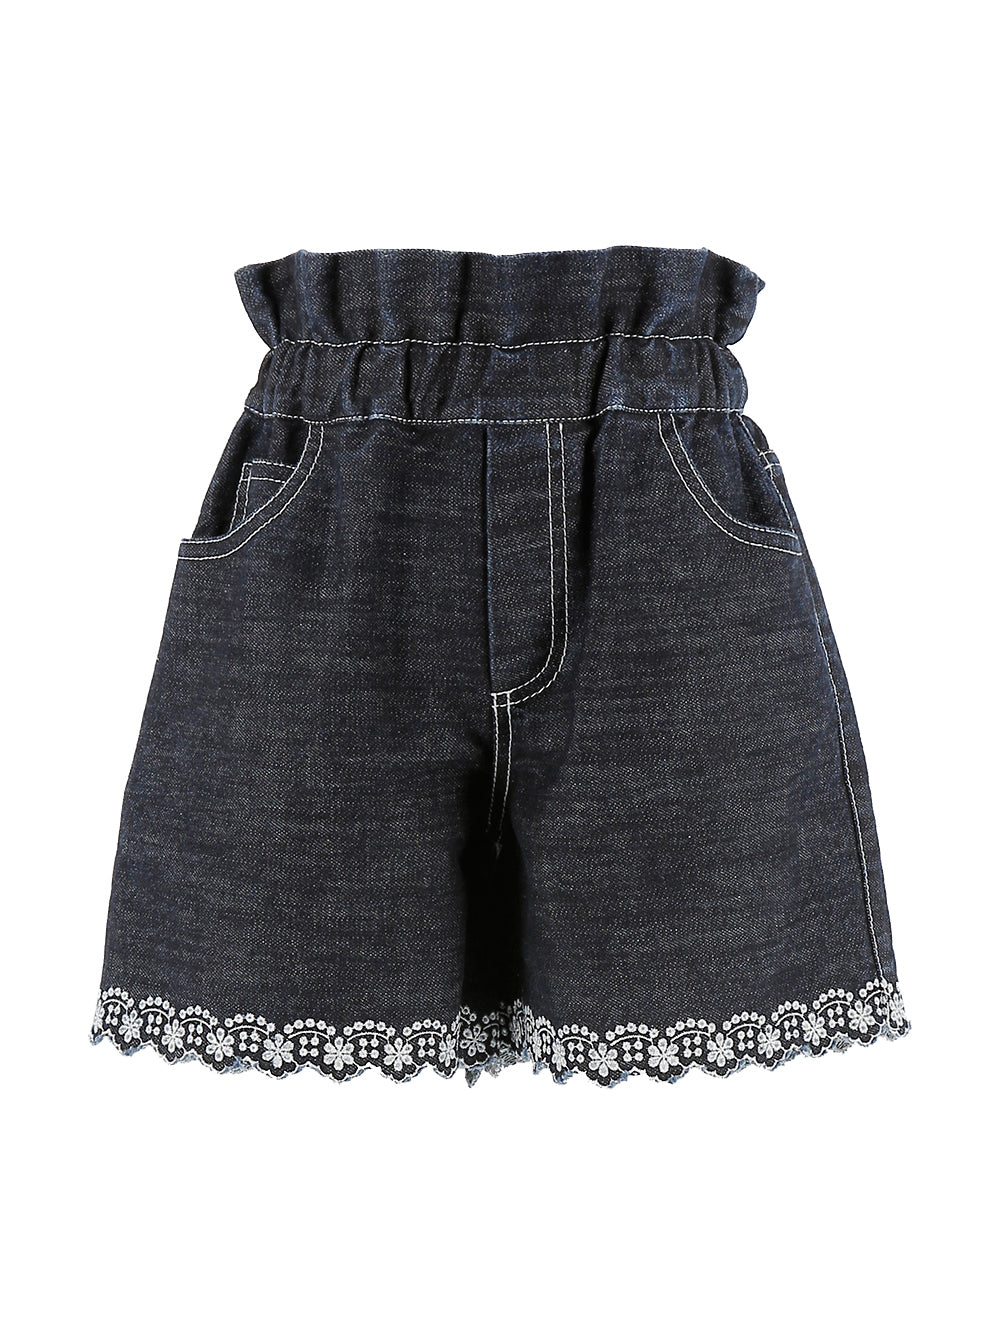 Embroidered Edge Shorts